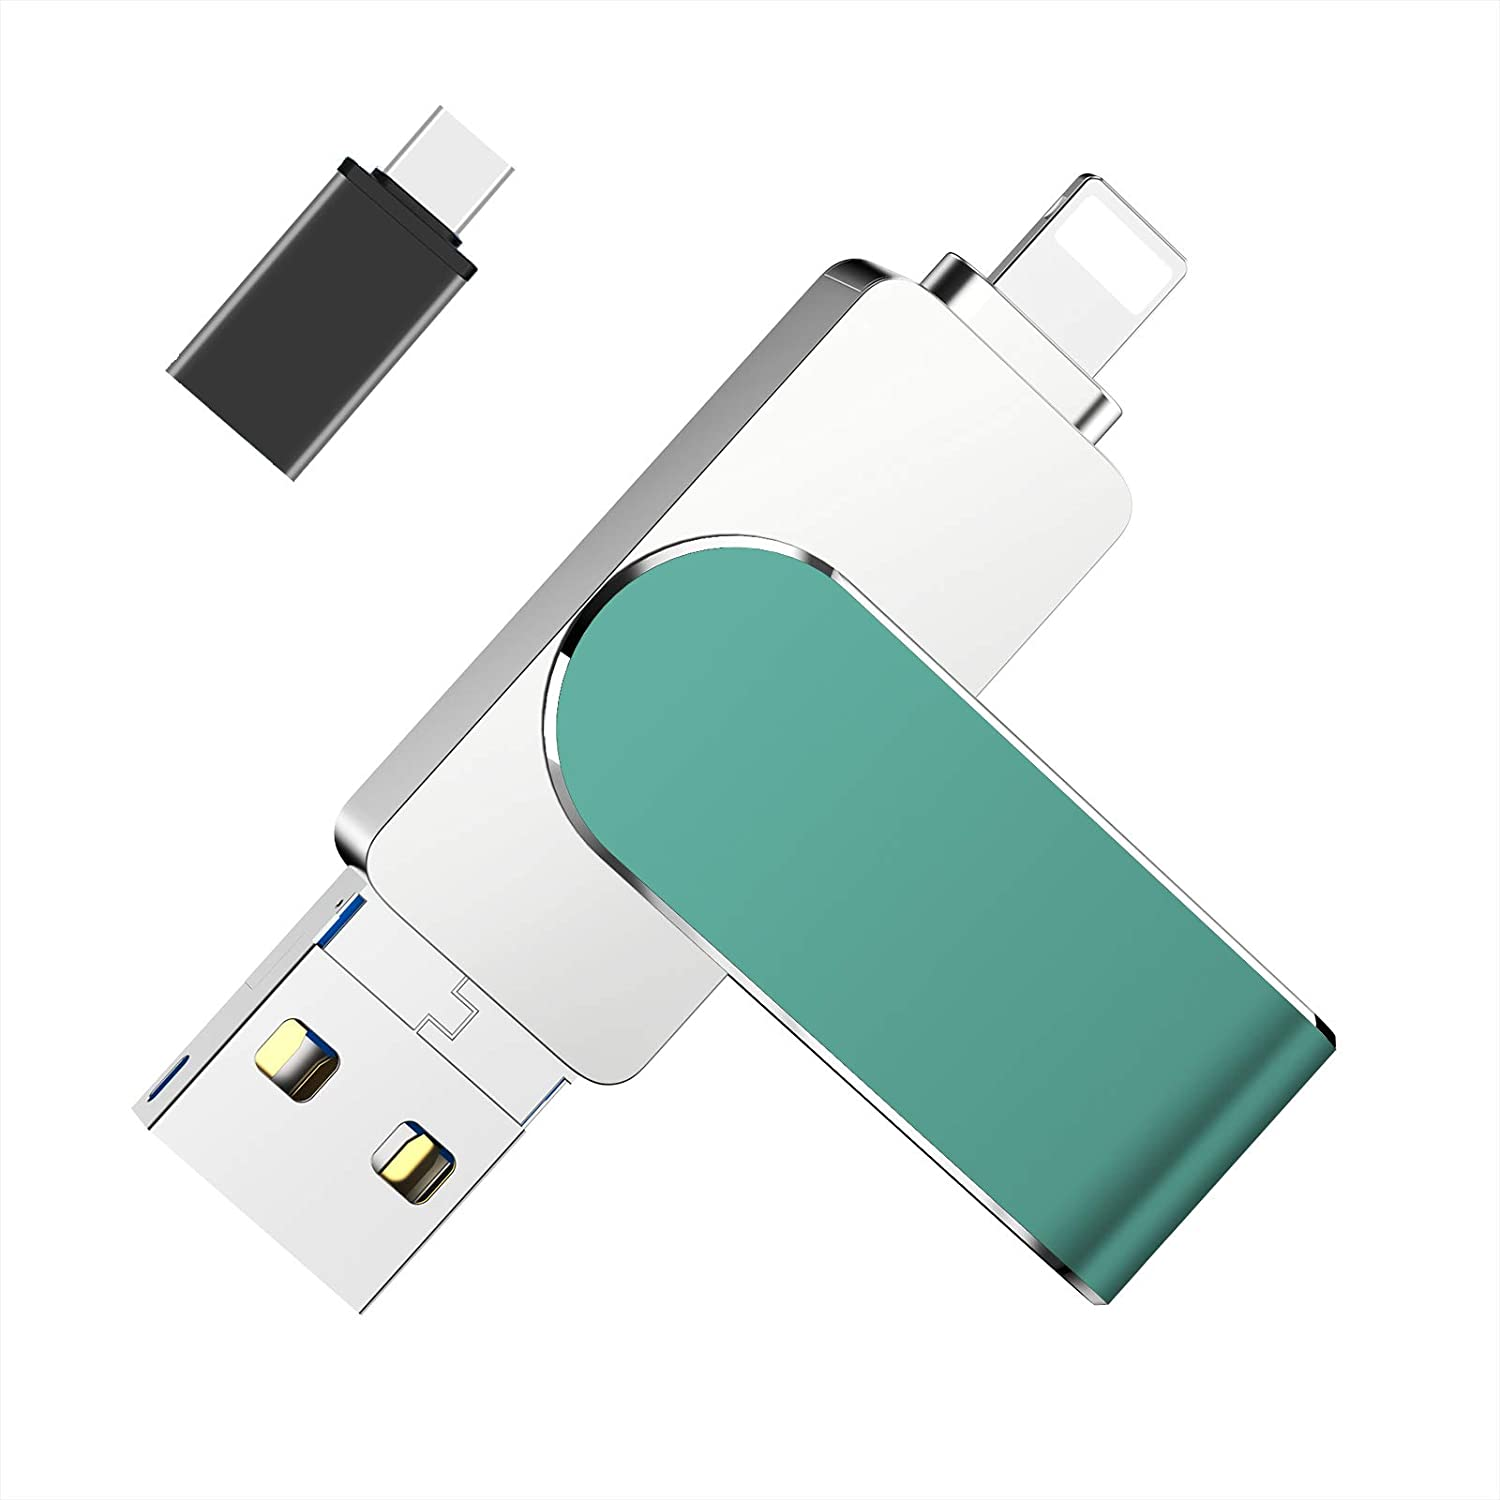 Flash Drive Compatible iPhone, 128GB Photo Stick Memory Stick Mobile Thumb Drive USB 3.0 Compatible iPhone/iPad/Android Backup OTG Smart Phone Protected by Password/Touch ID and Face ID (Green)